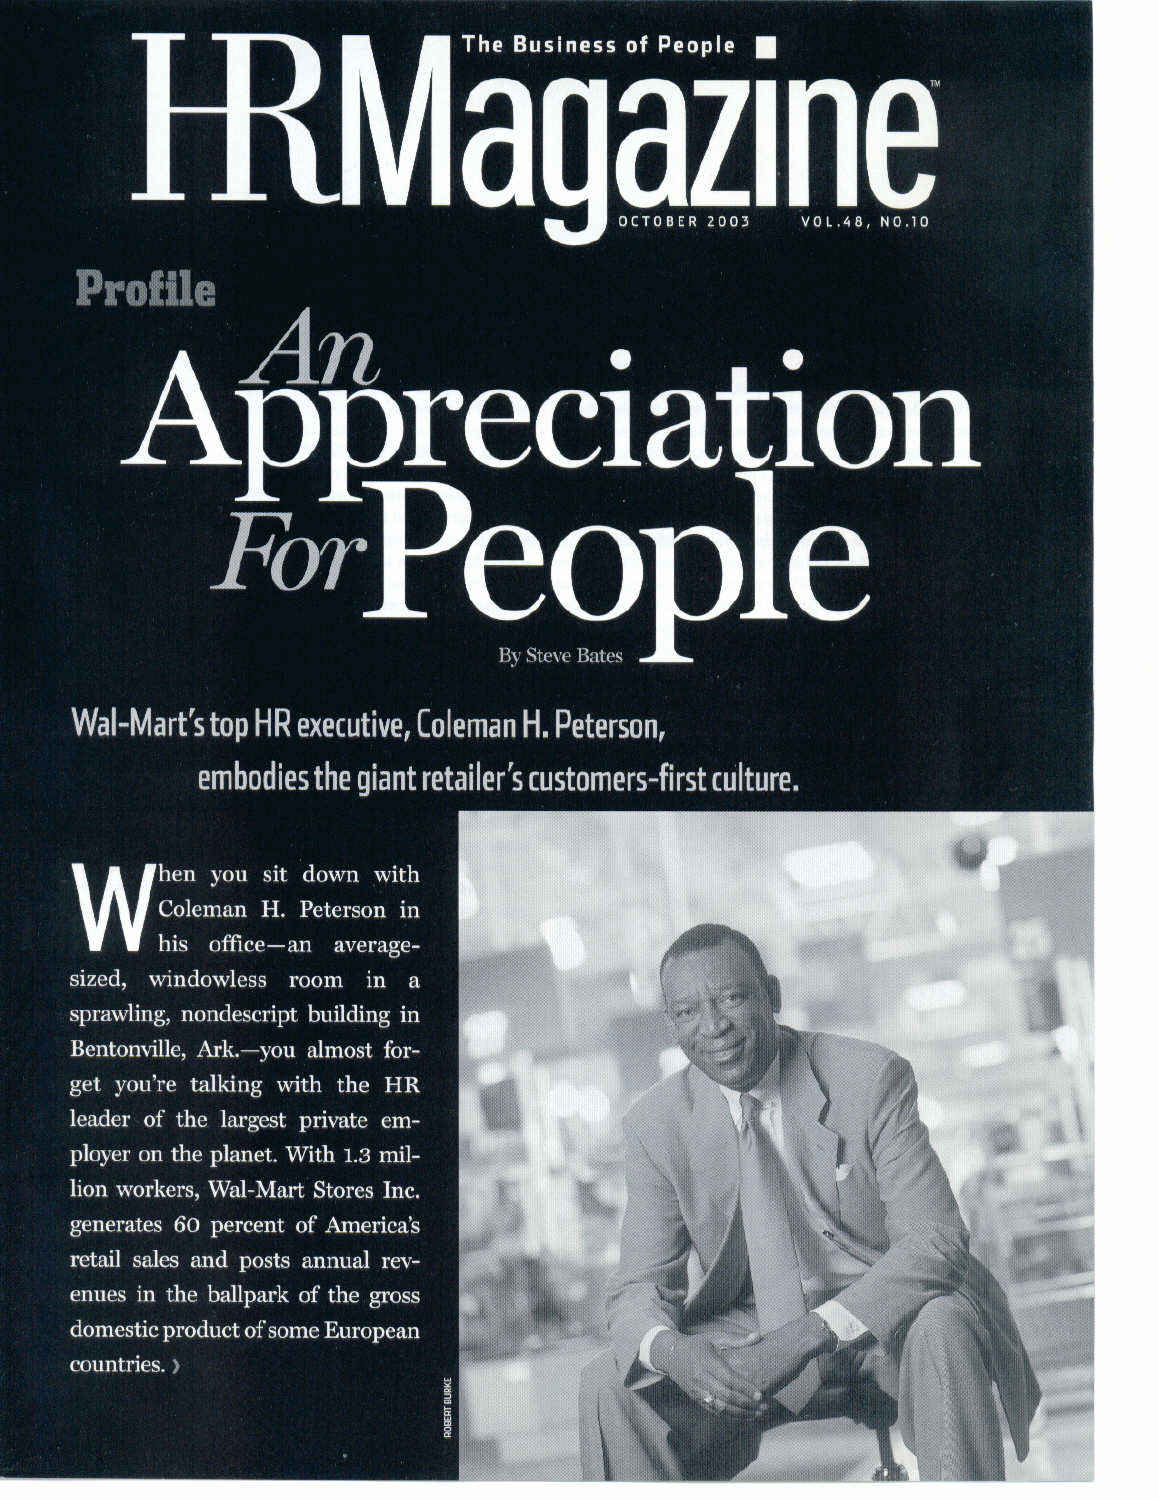 An Appreciation For People